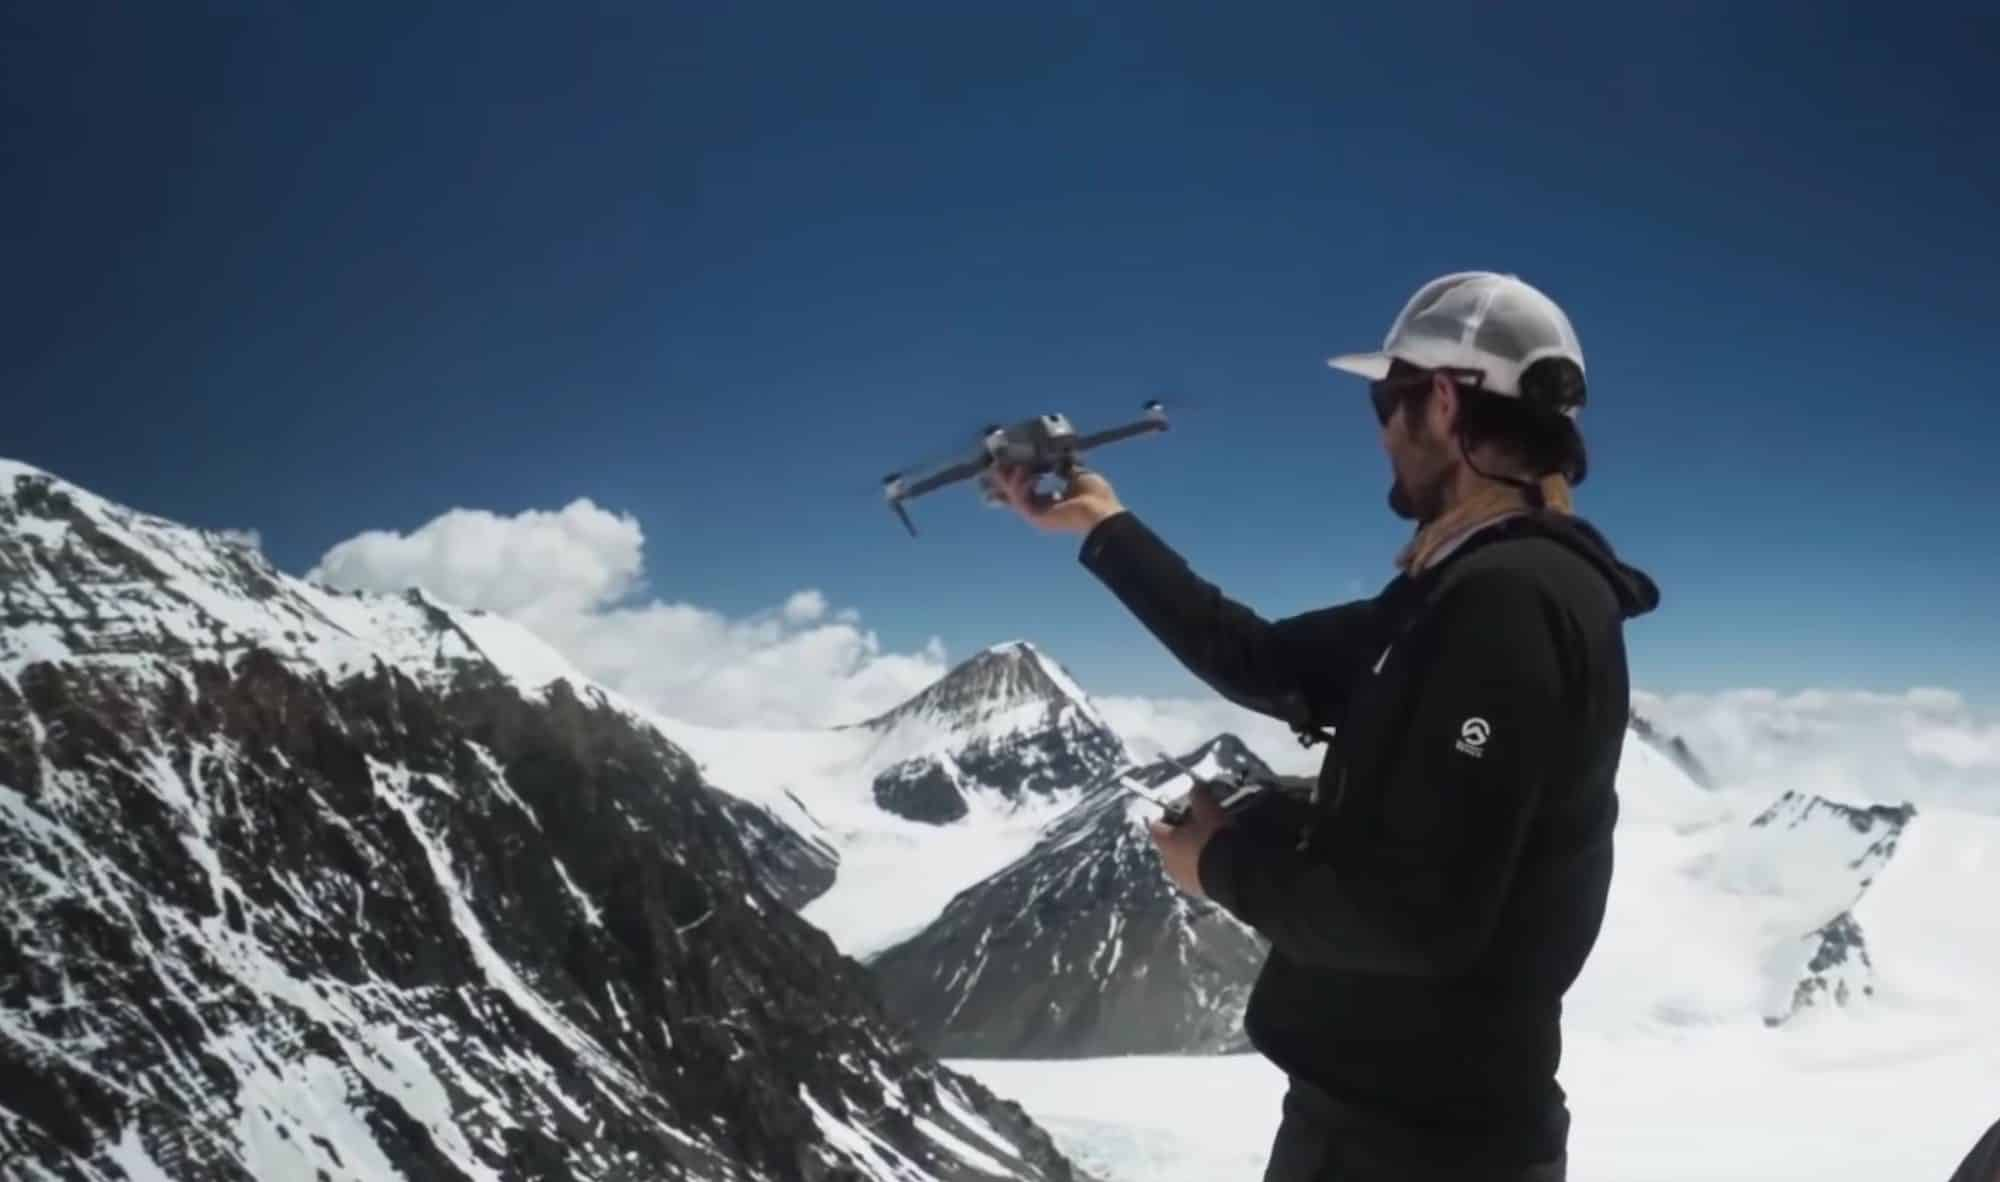 National Geographic team surveyed Mount Everest with a drone!